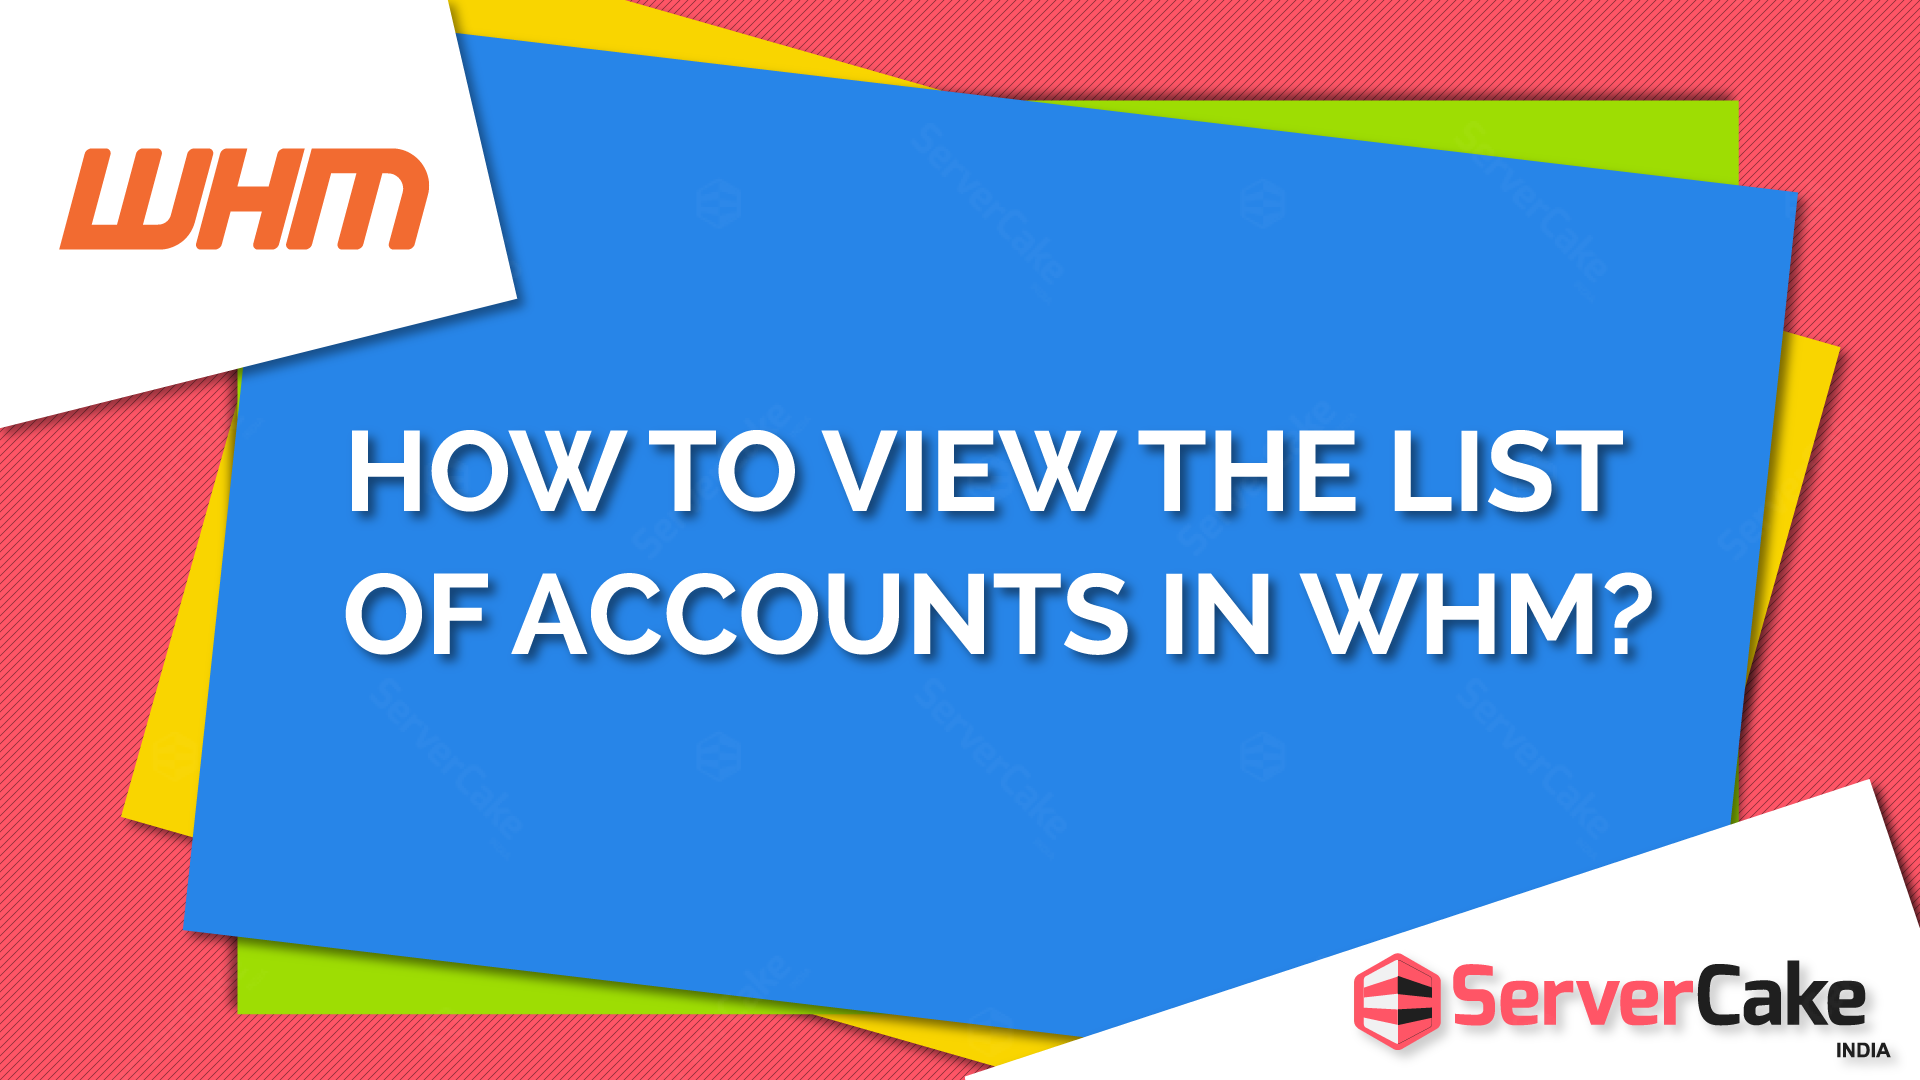 View Accounts list in WHM